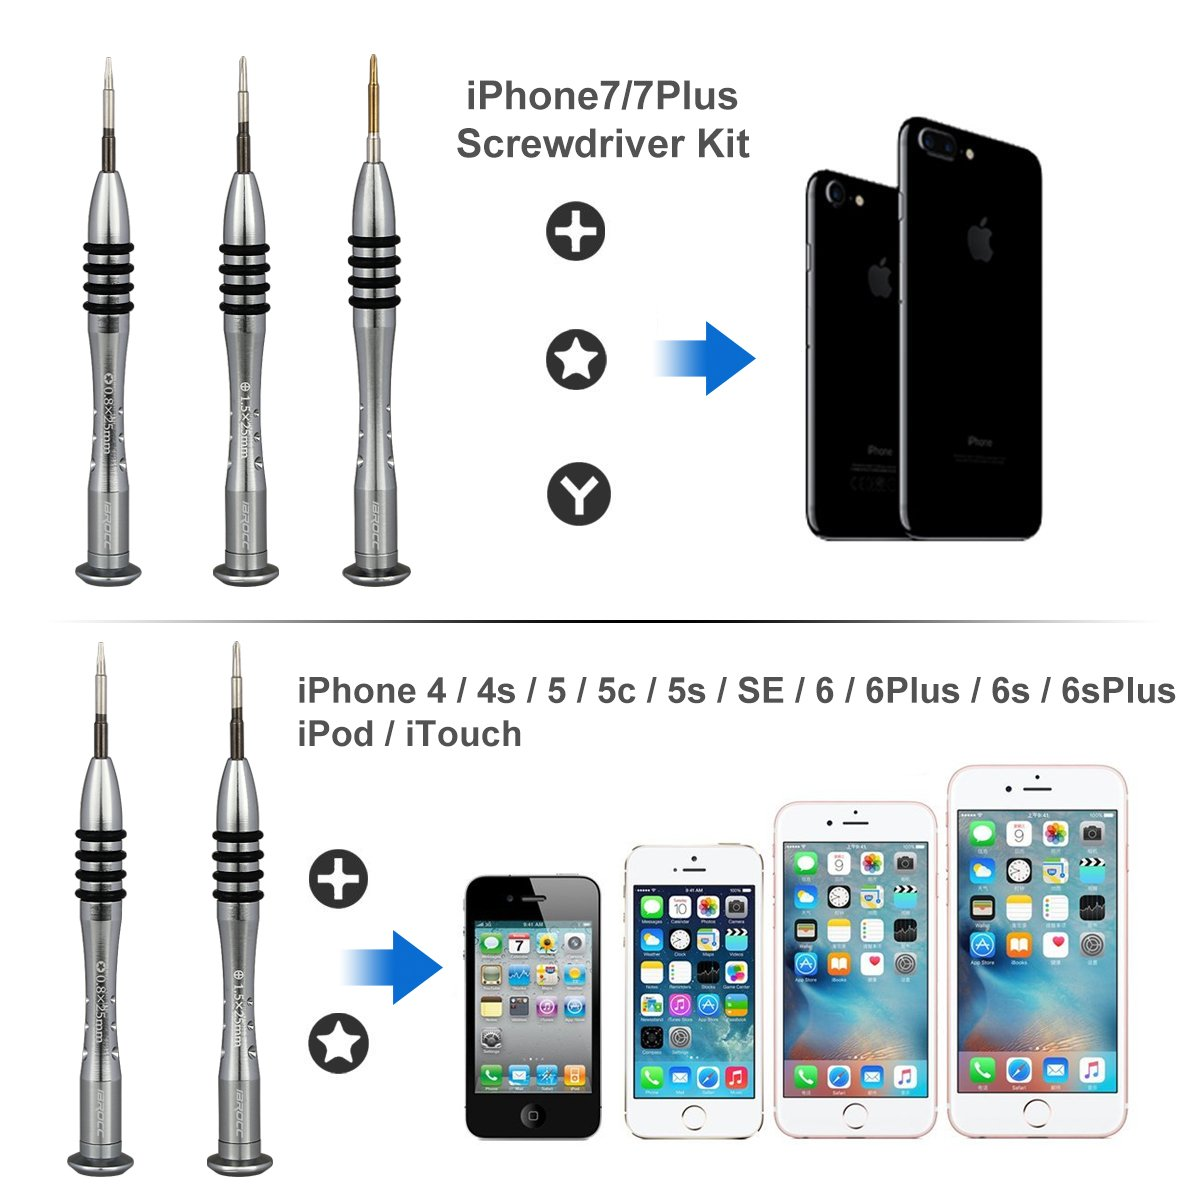 0.8mm Star Pentalobe Screwdriver 0.6mm Y Tri-Point Triwing Magnetic Screwdriver for iPhone 8//7//6//5//4,iPod,iTouch -3PCS Portable Repair Tool Kits with 1.5mm Phillips IBROCC Screwdriver Kits